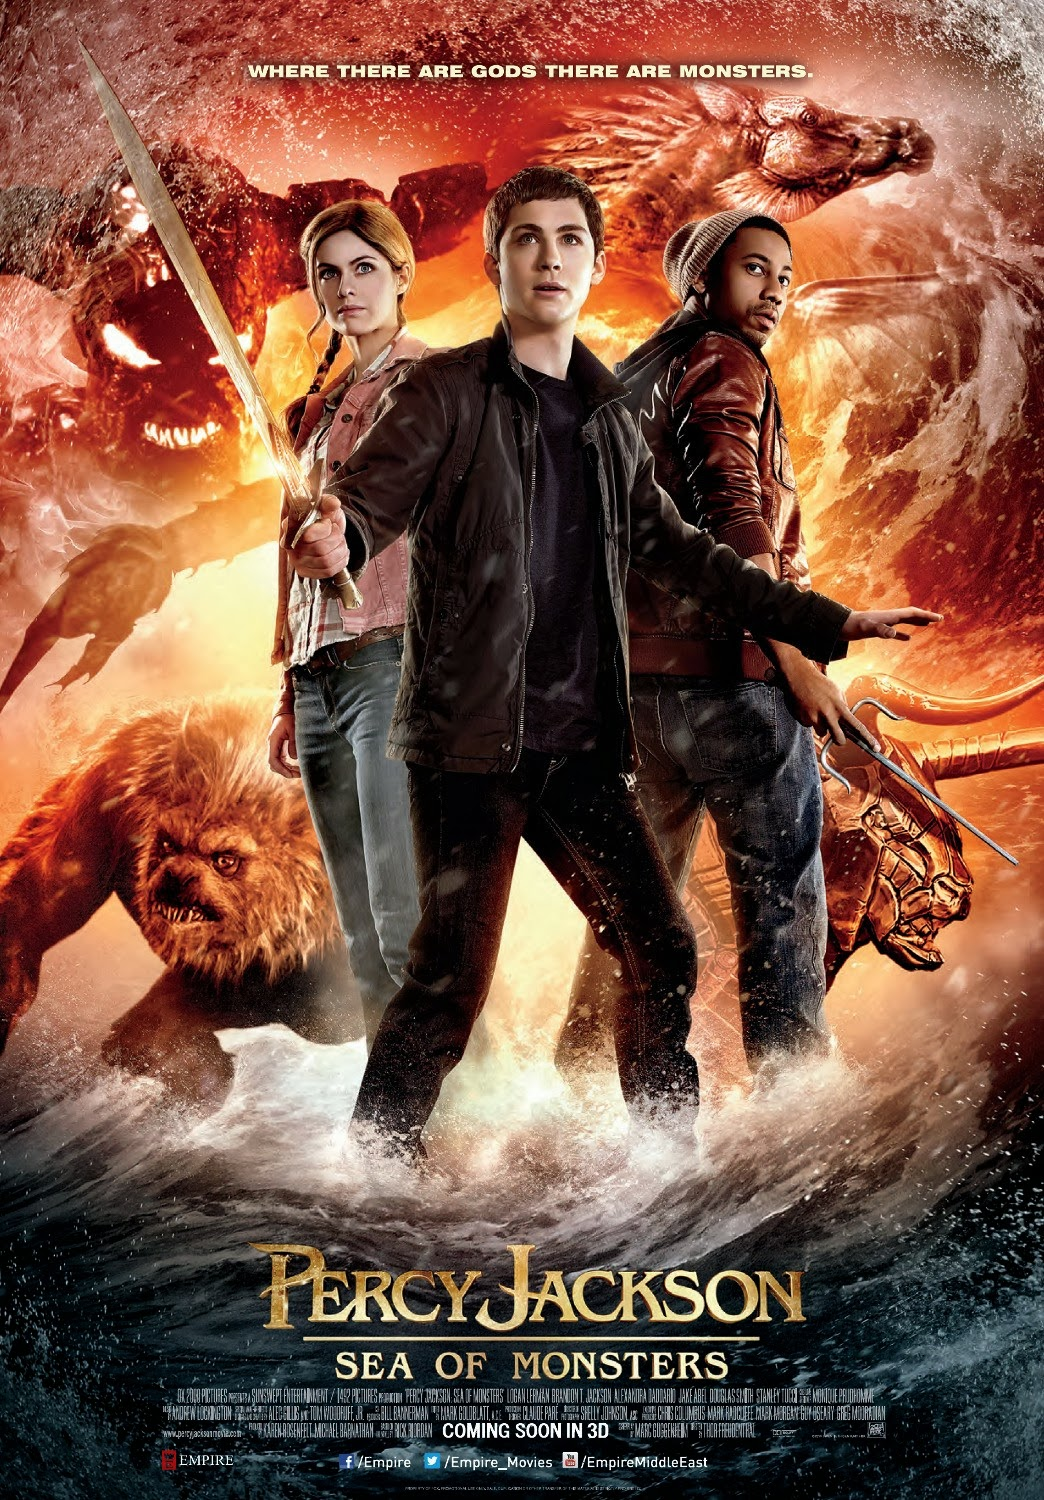 http://www.mazika4way.com/2013/11/Percy-Jackson-Sea-of-Monsters.html